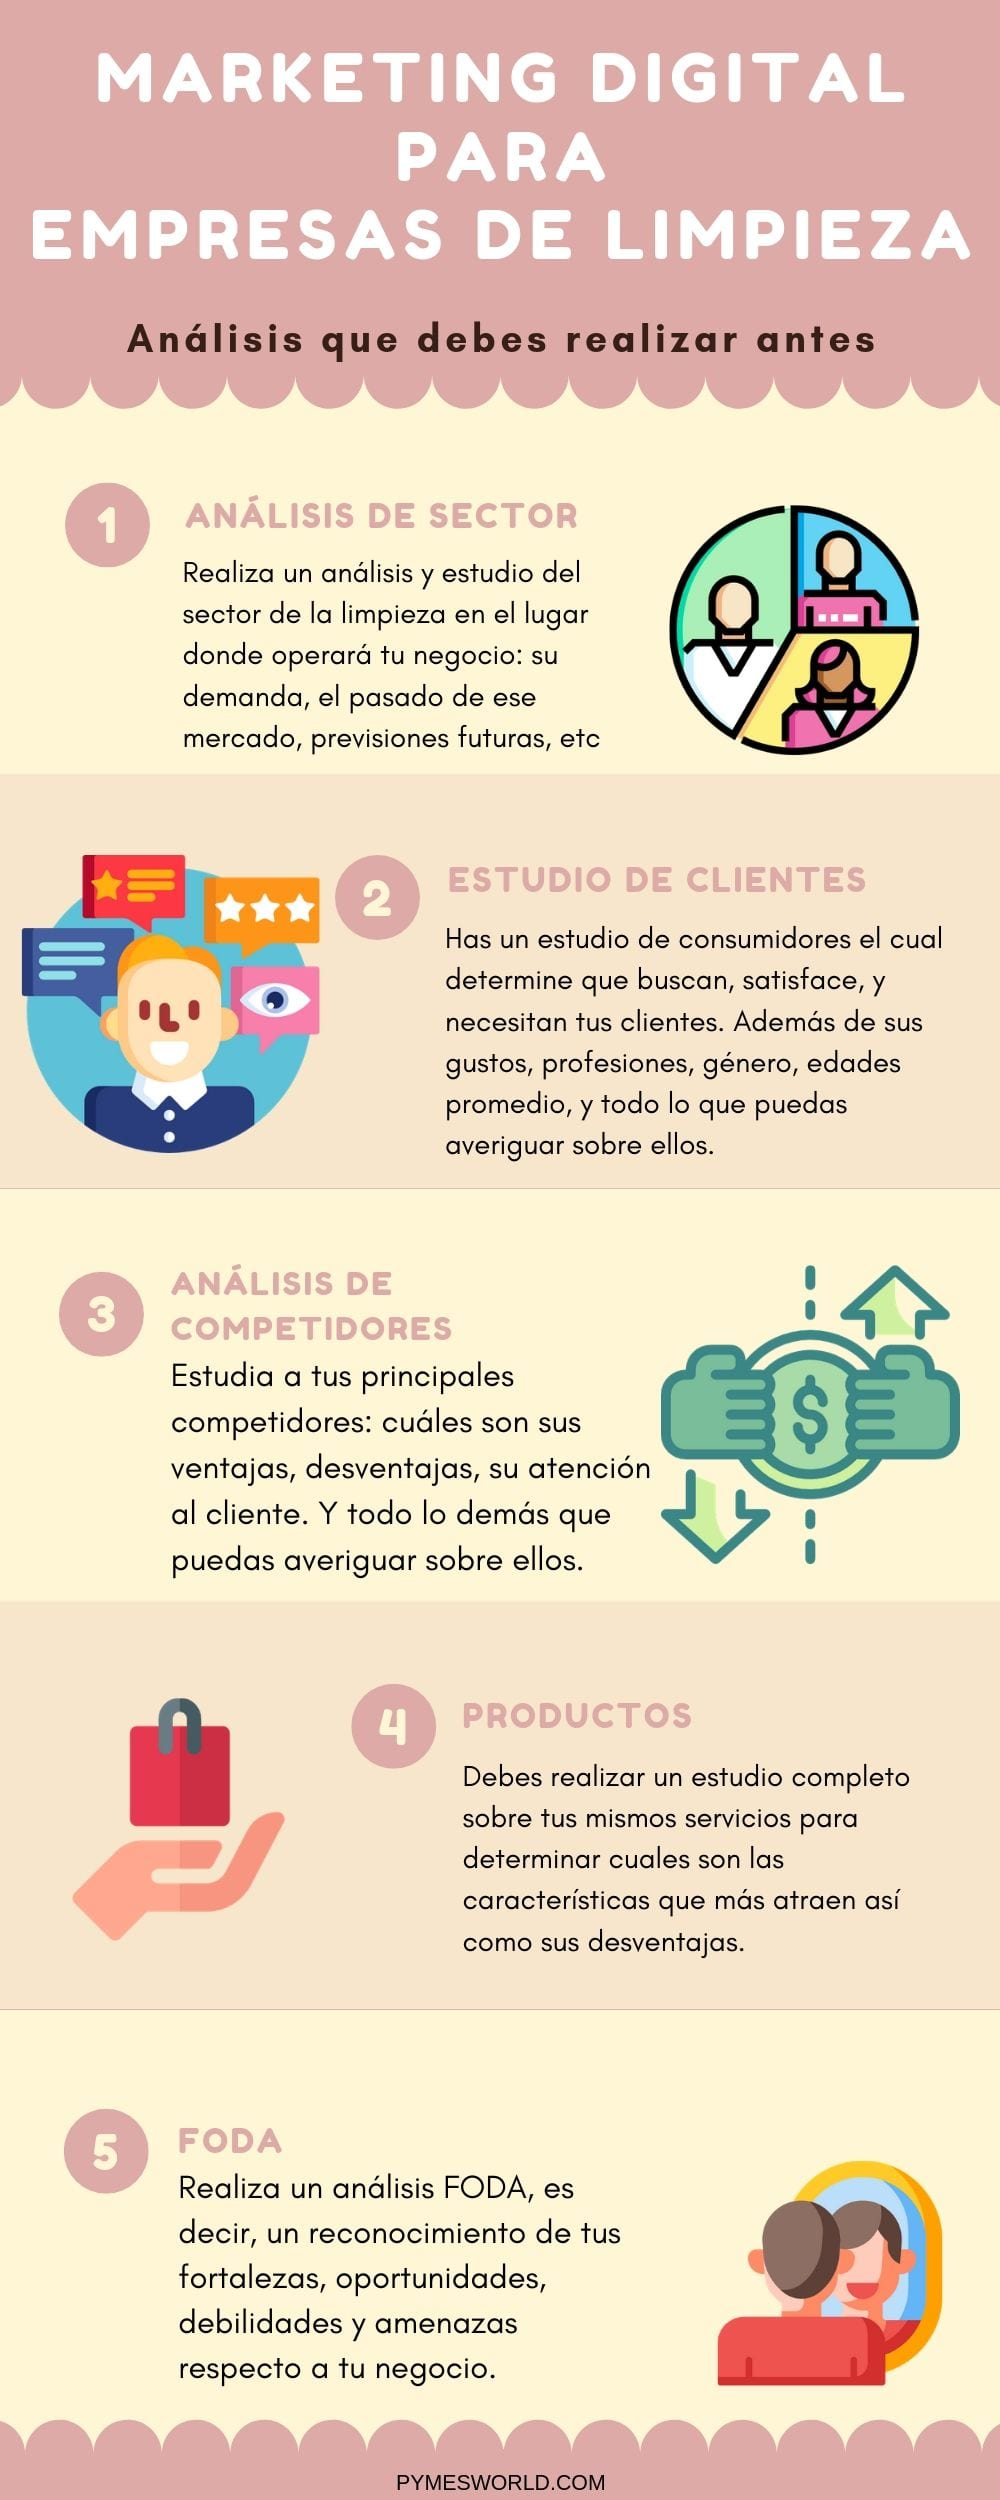 Infografía marketing empresas de limpieza